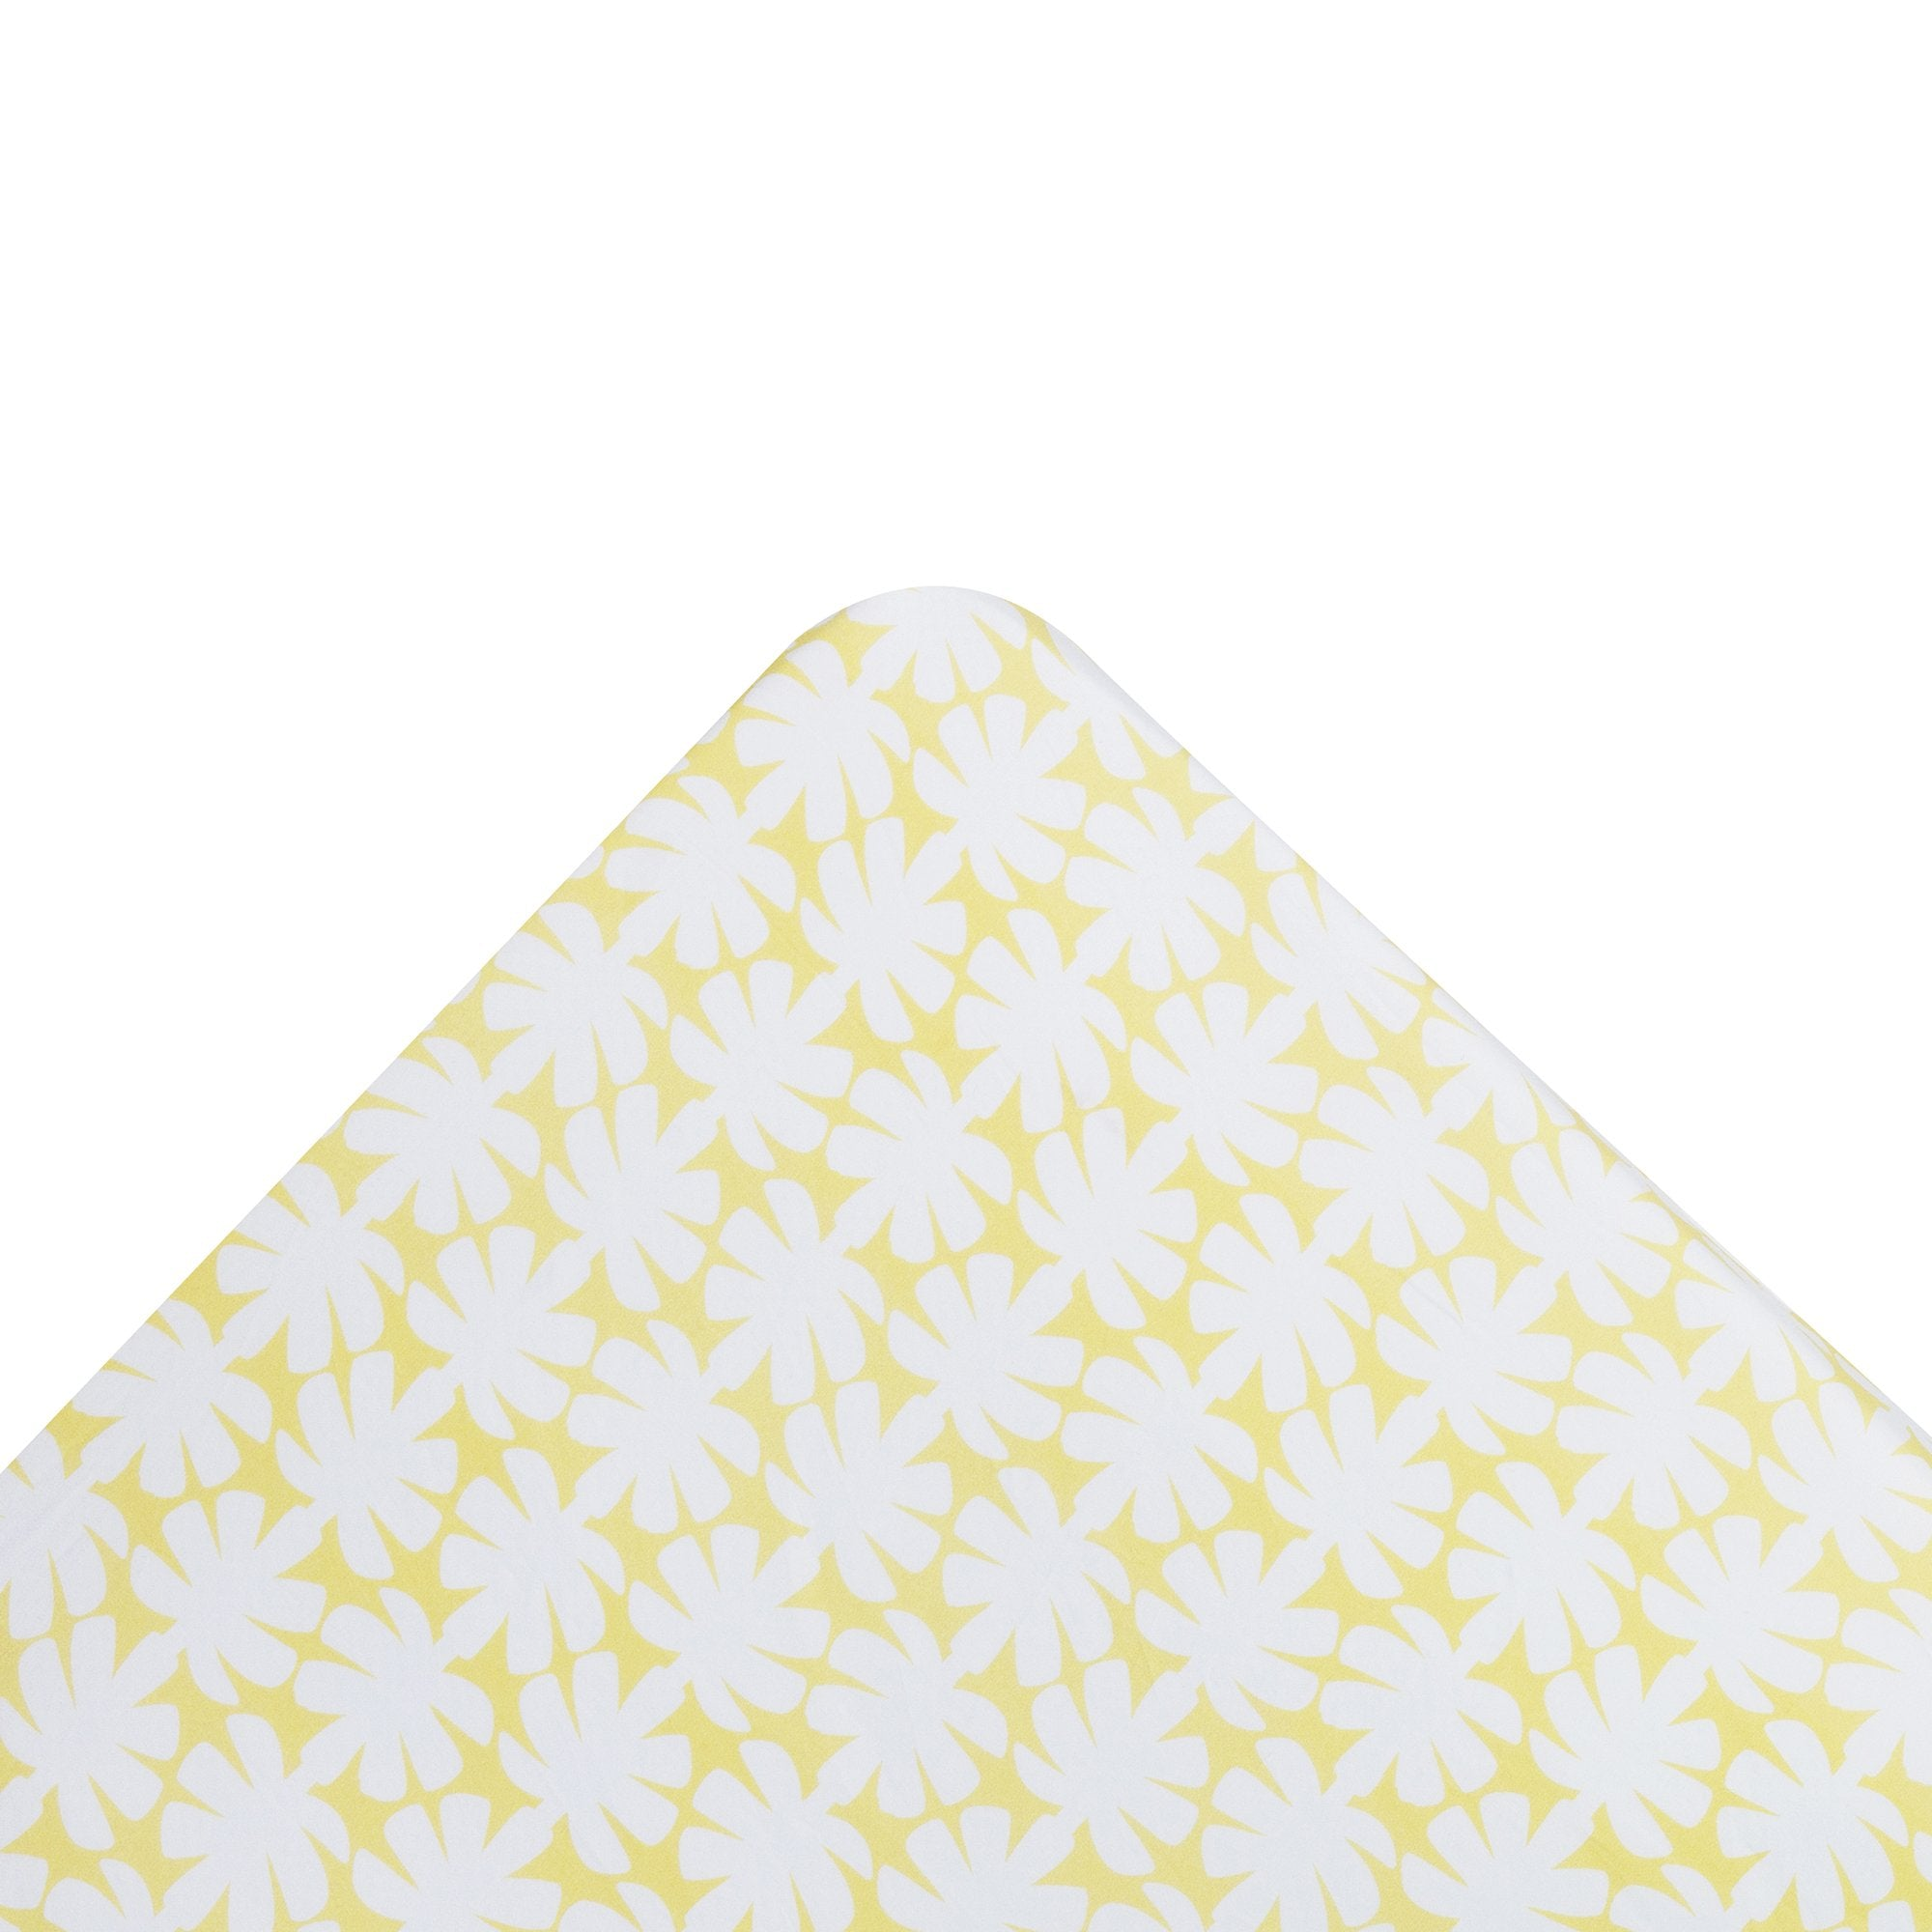 Kikau's Lemon Yellow Coconut Palm kids fitted sheet on white background